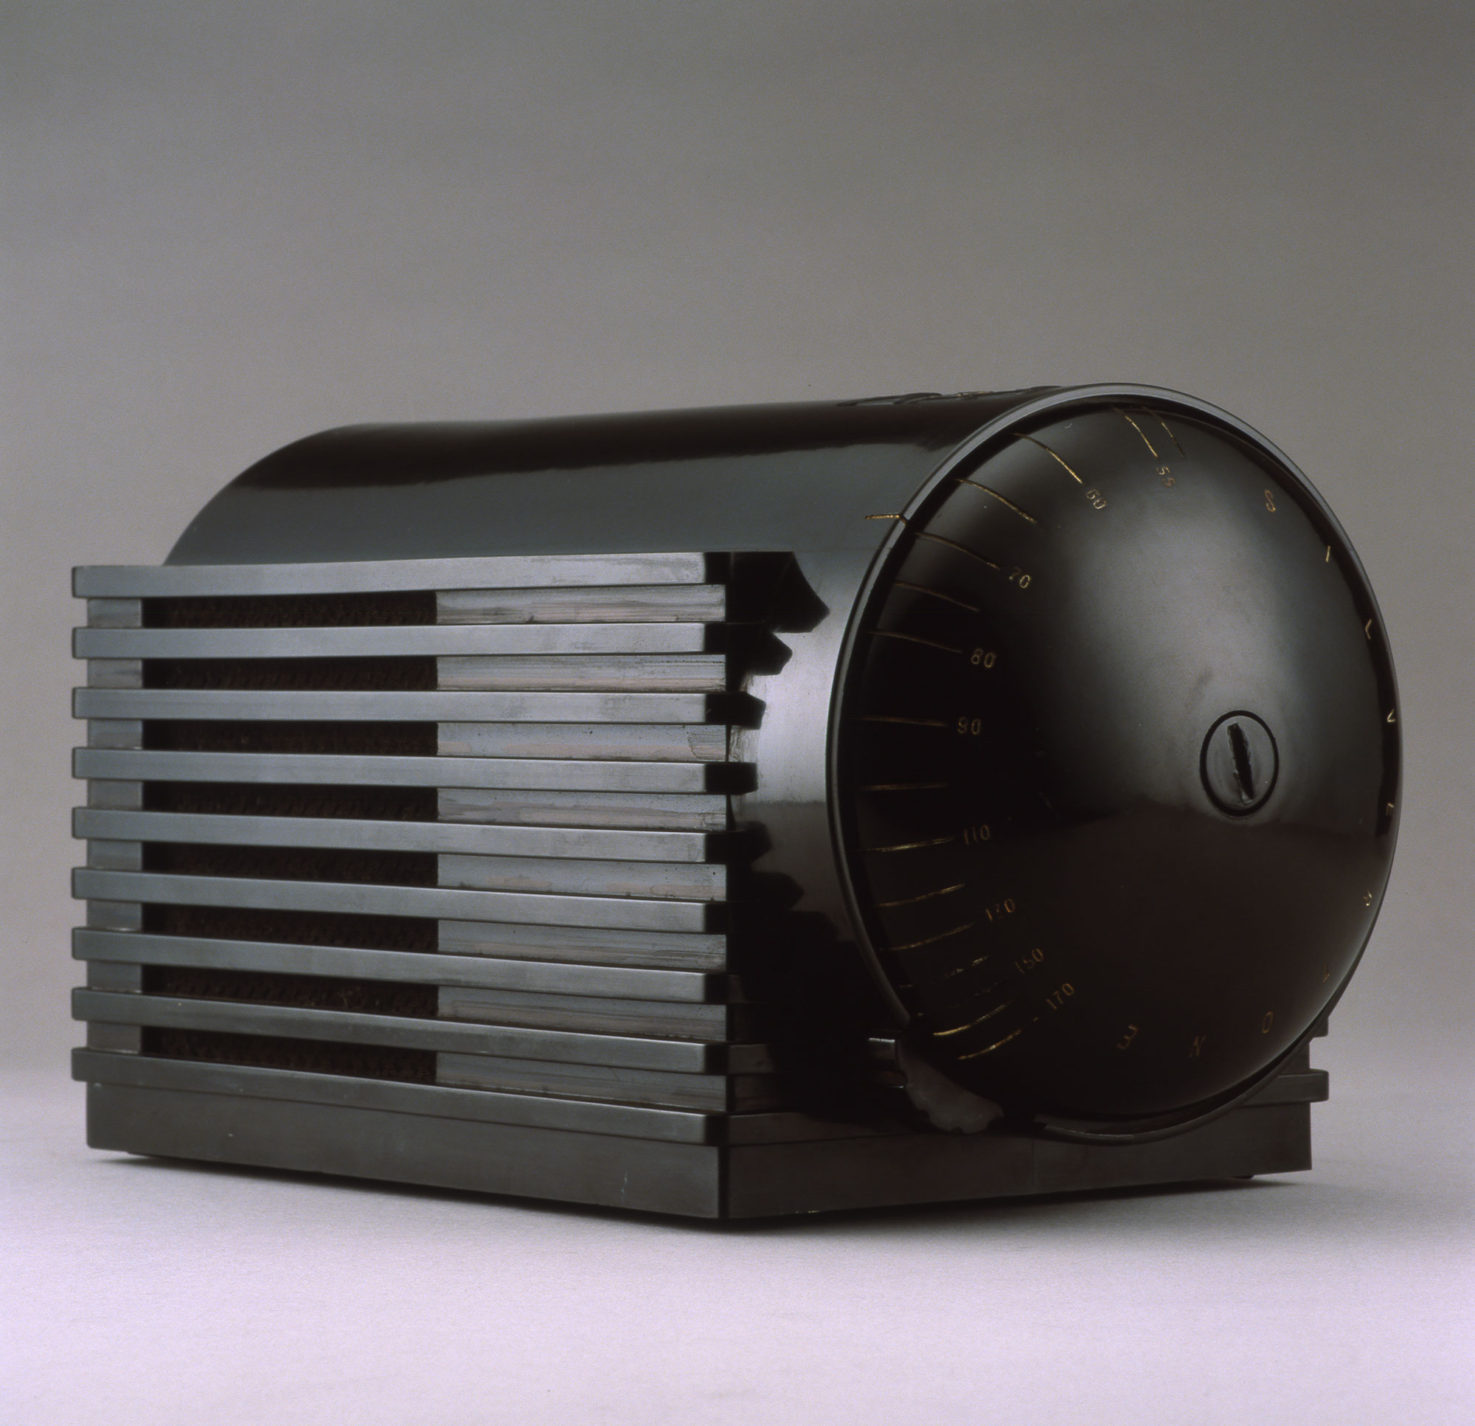 Black plastic radio with cylindrical body and rectangular base. One domed end of the body is the control dial.